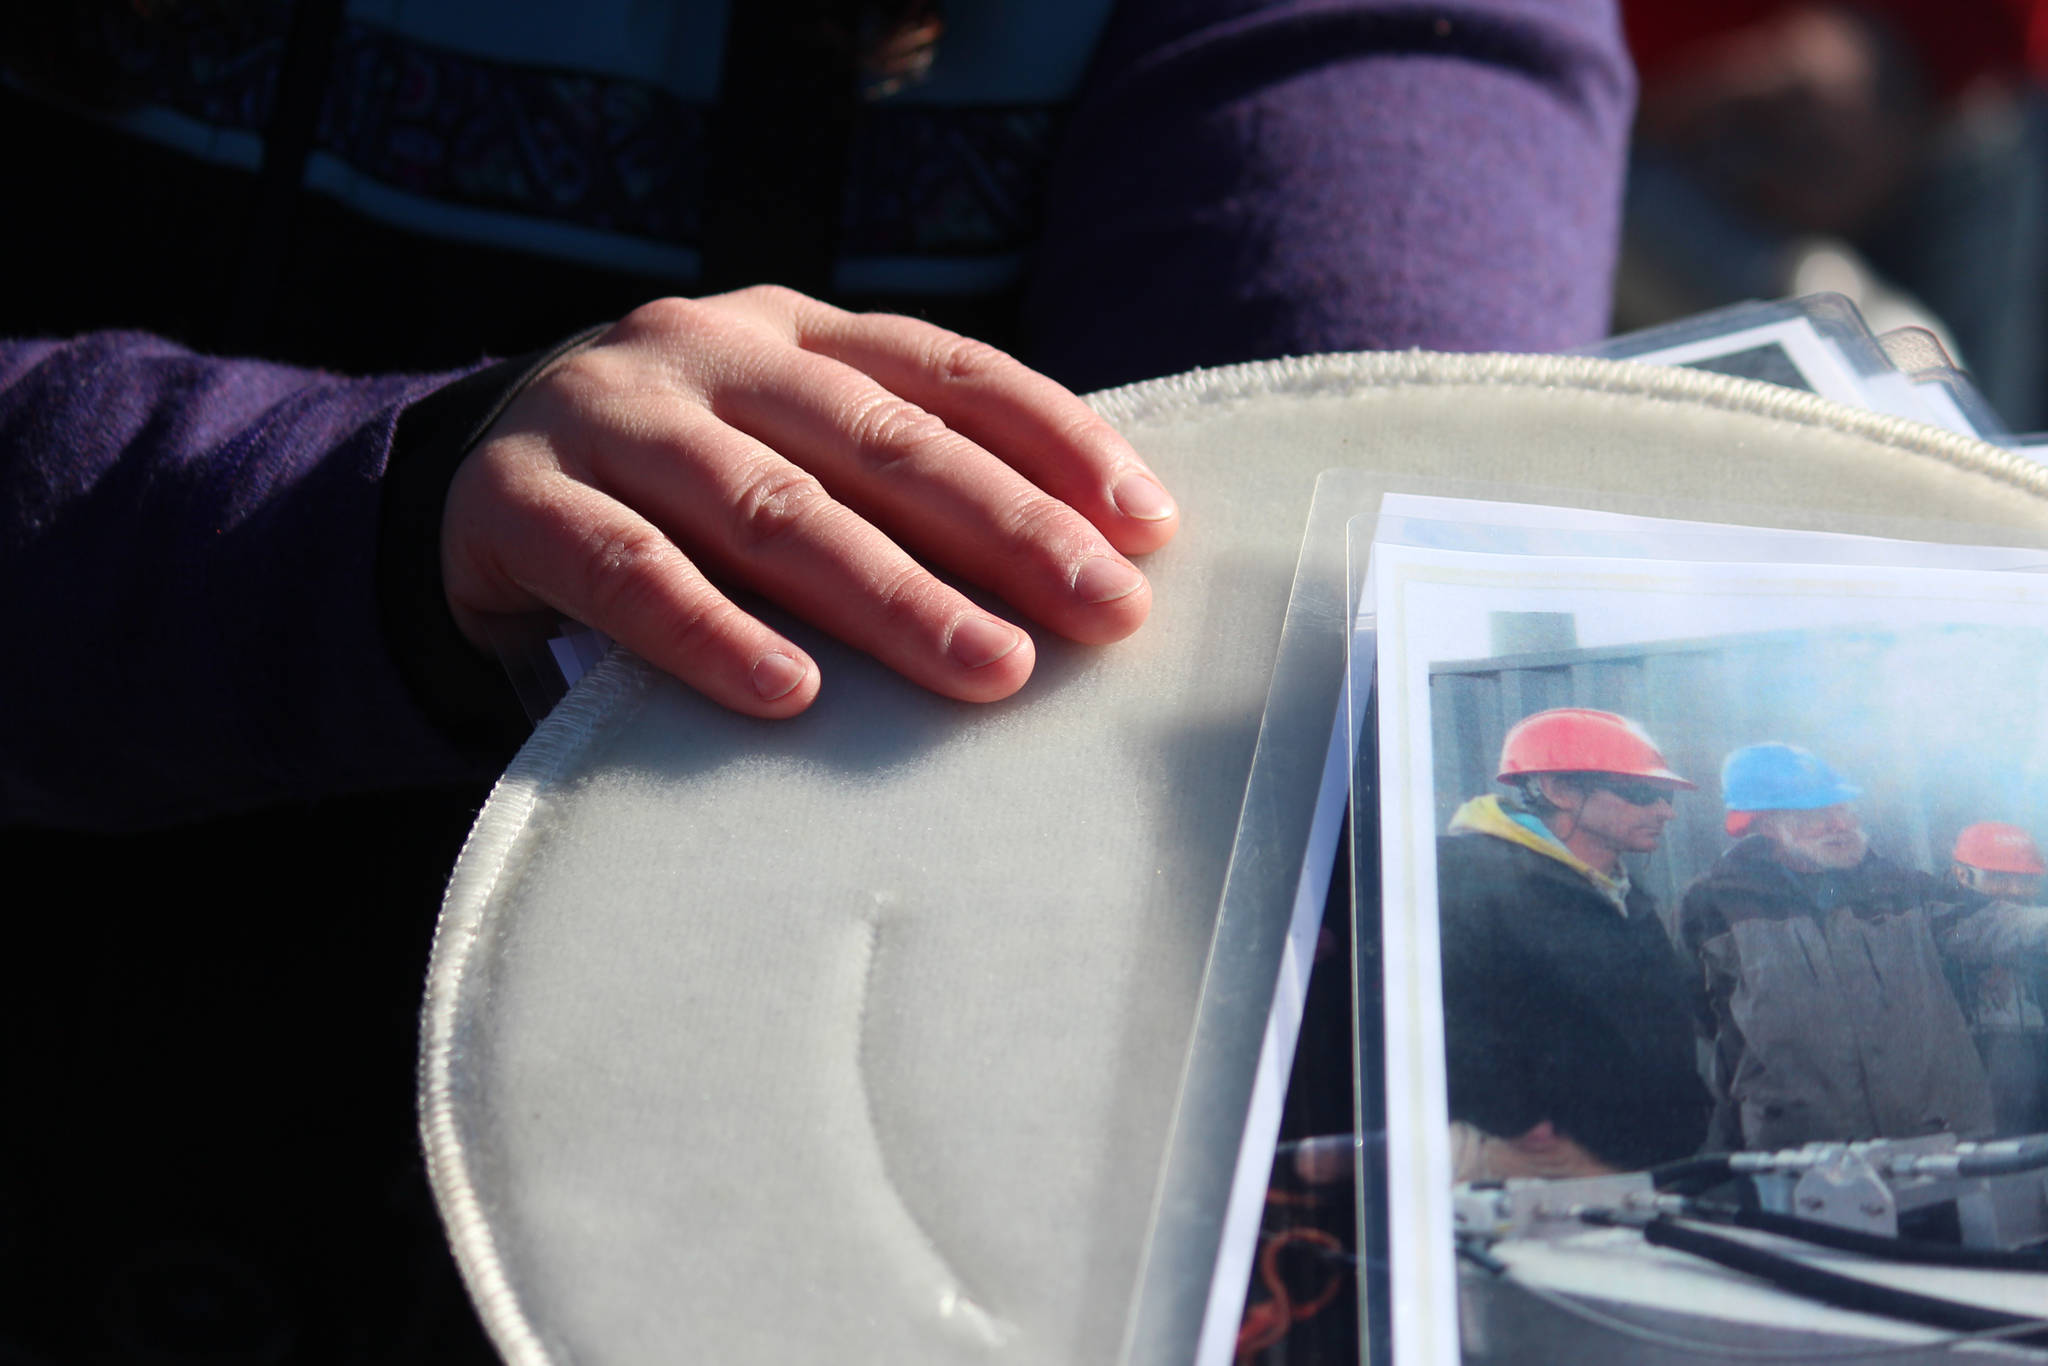 RCAC Outreach Coordinator Lisa Matlock shows Homer area residents aboard the Discovery an example of the filters used to catch oil during a spill while on a tour of annual oil spill response training in Kachemak Bay on Saturday, April 14, 2018 in Homer, Alaska. The public tour was a first for Homer and was hosted by the Prince William Sound Regional Citizens' Advisory Council in conjunction with Alyeska Pipeline, Alaska Coastal Marine and the Center for Alaskan Coastal Studies. (Photo by Megan Pacer/Homer News)